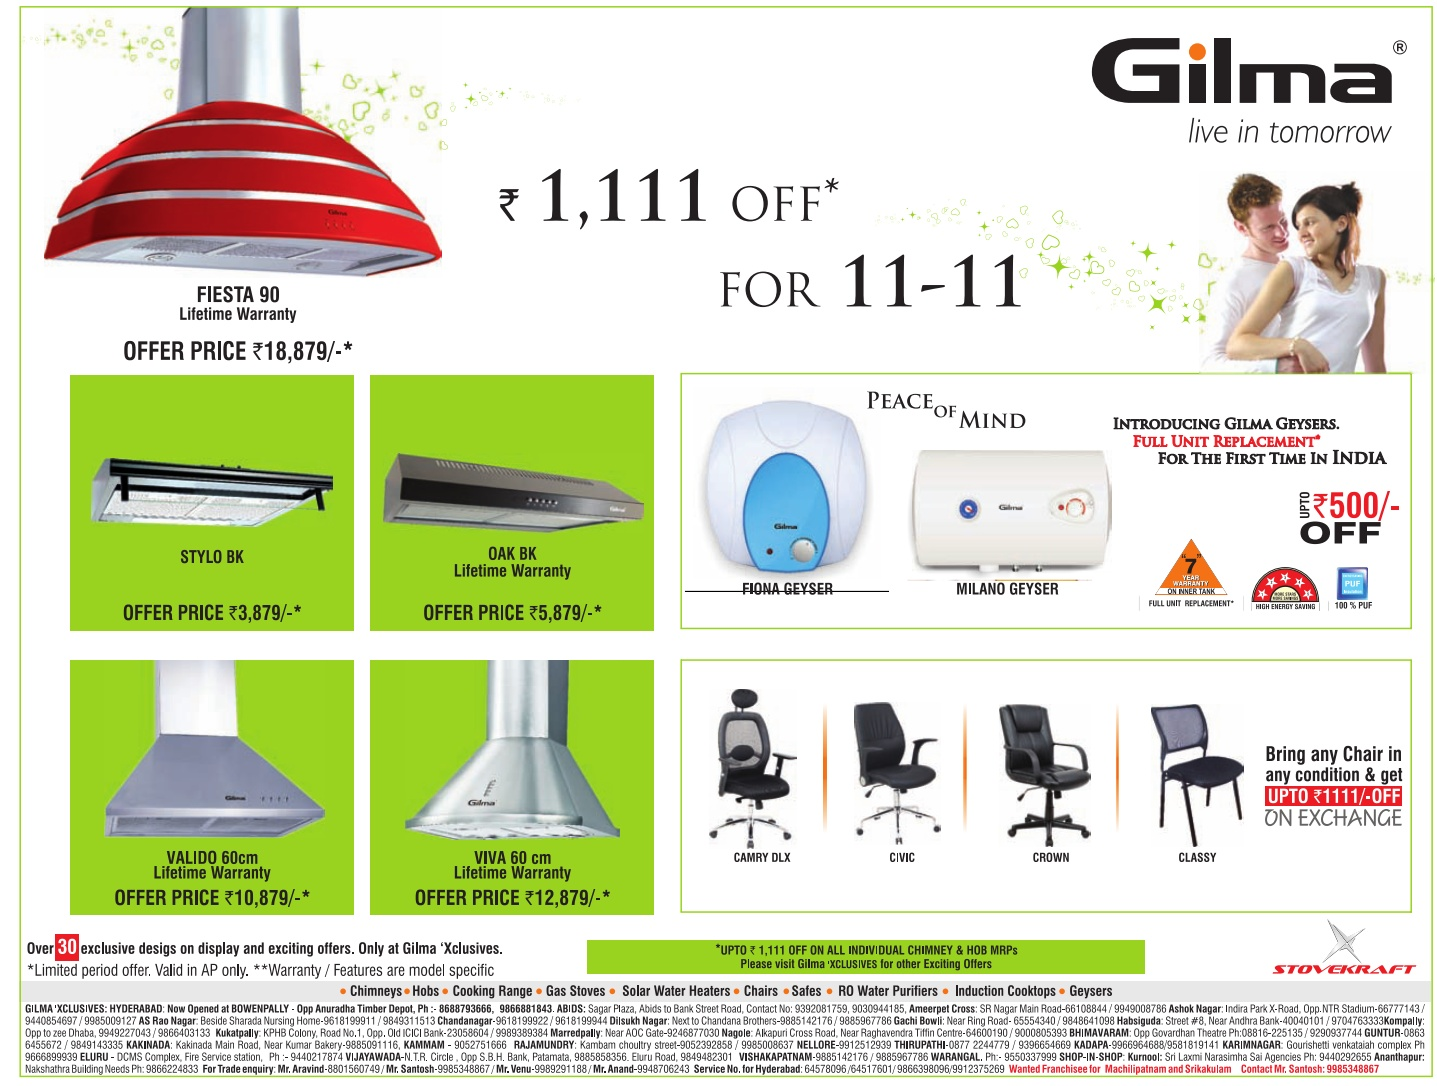 Gilma Presents Rs 1 111 Off On All Products For 11 11 At